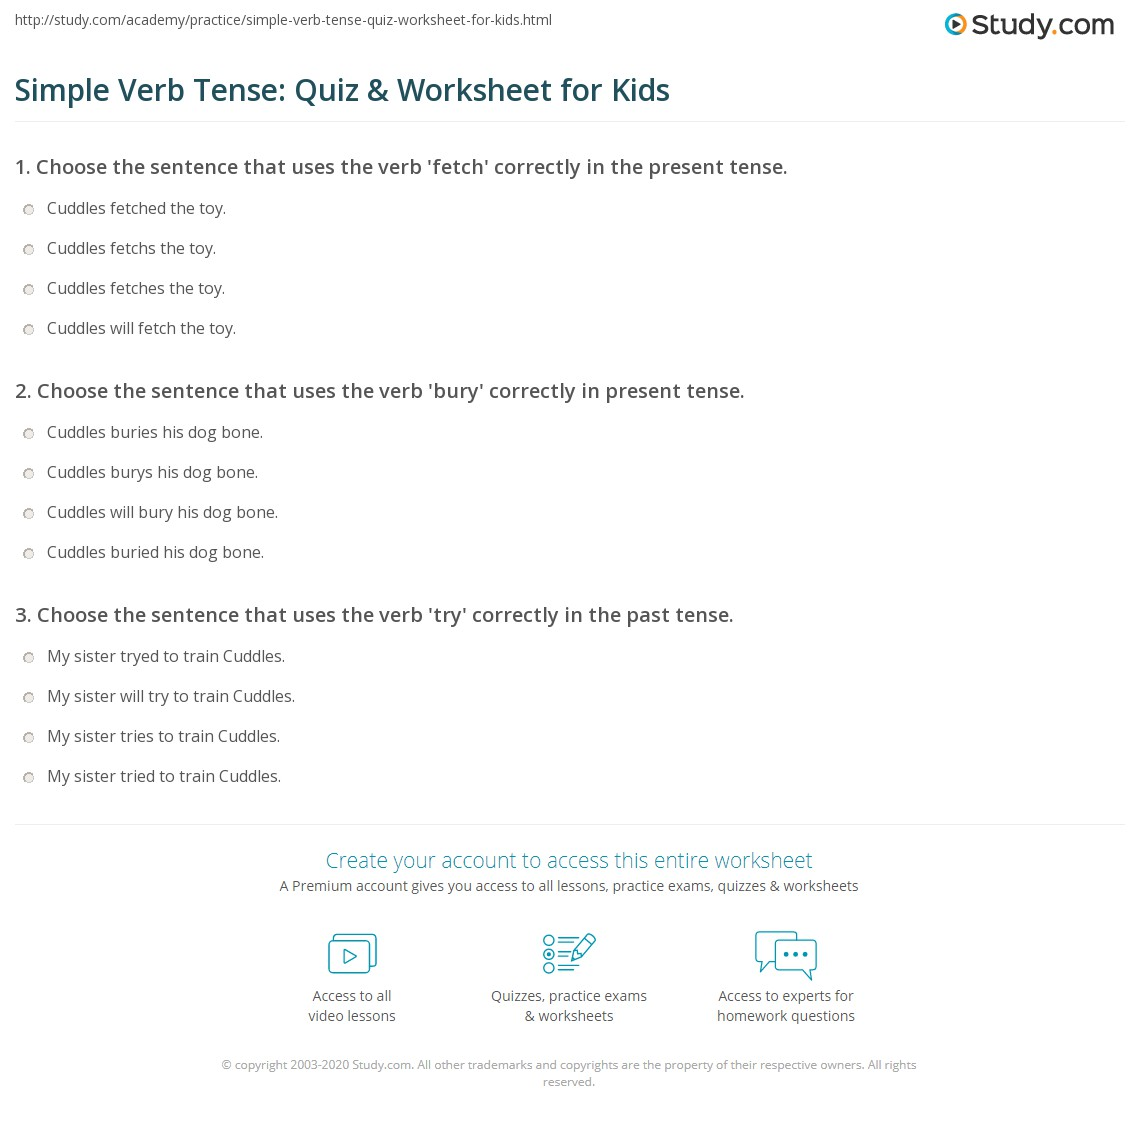 Simple Verb Tense Quiz Amp Worksheet For Kids